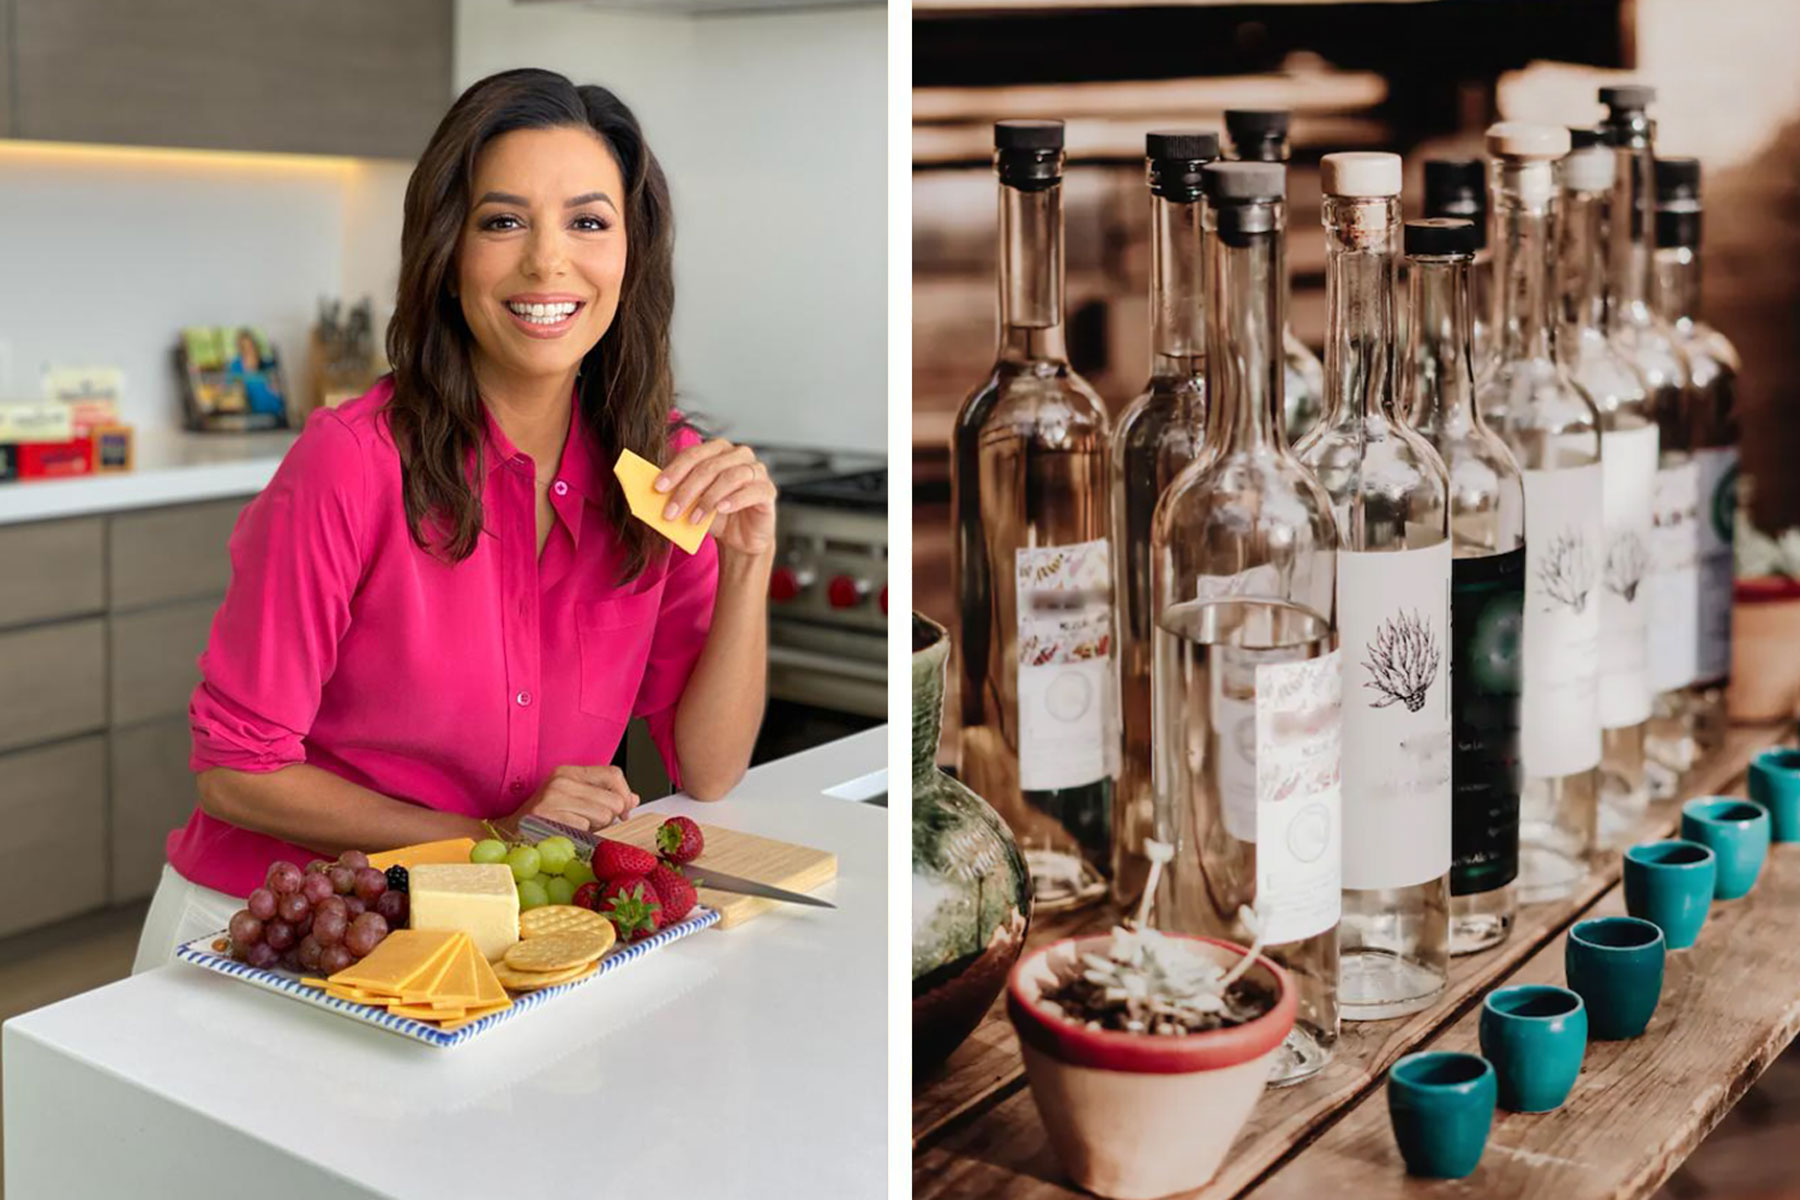 Left, Eva Longoria with cheese plate; Right, mezcal bottles and shot glasses on wooden table